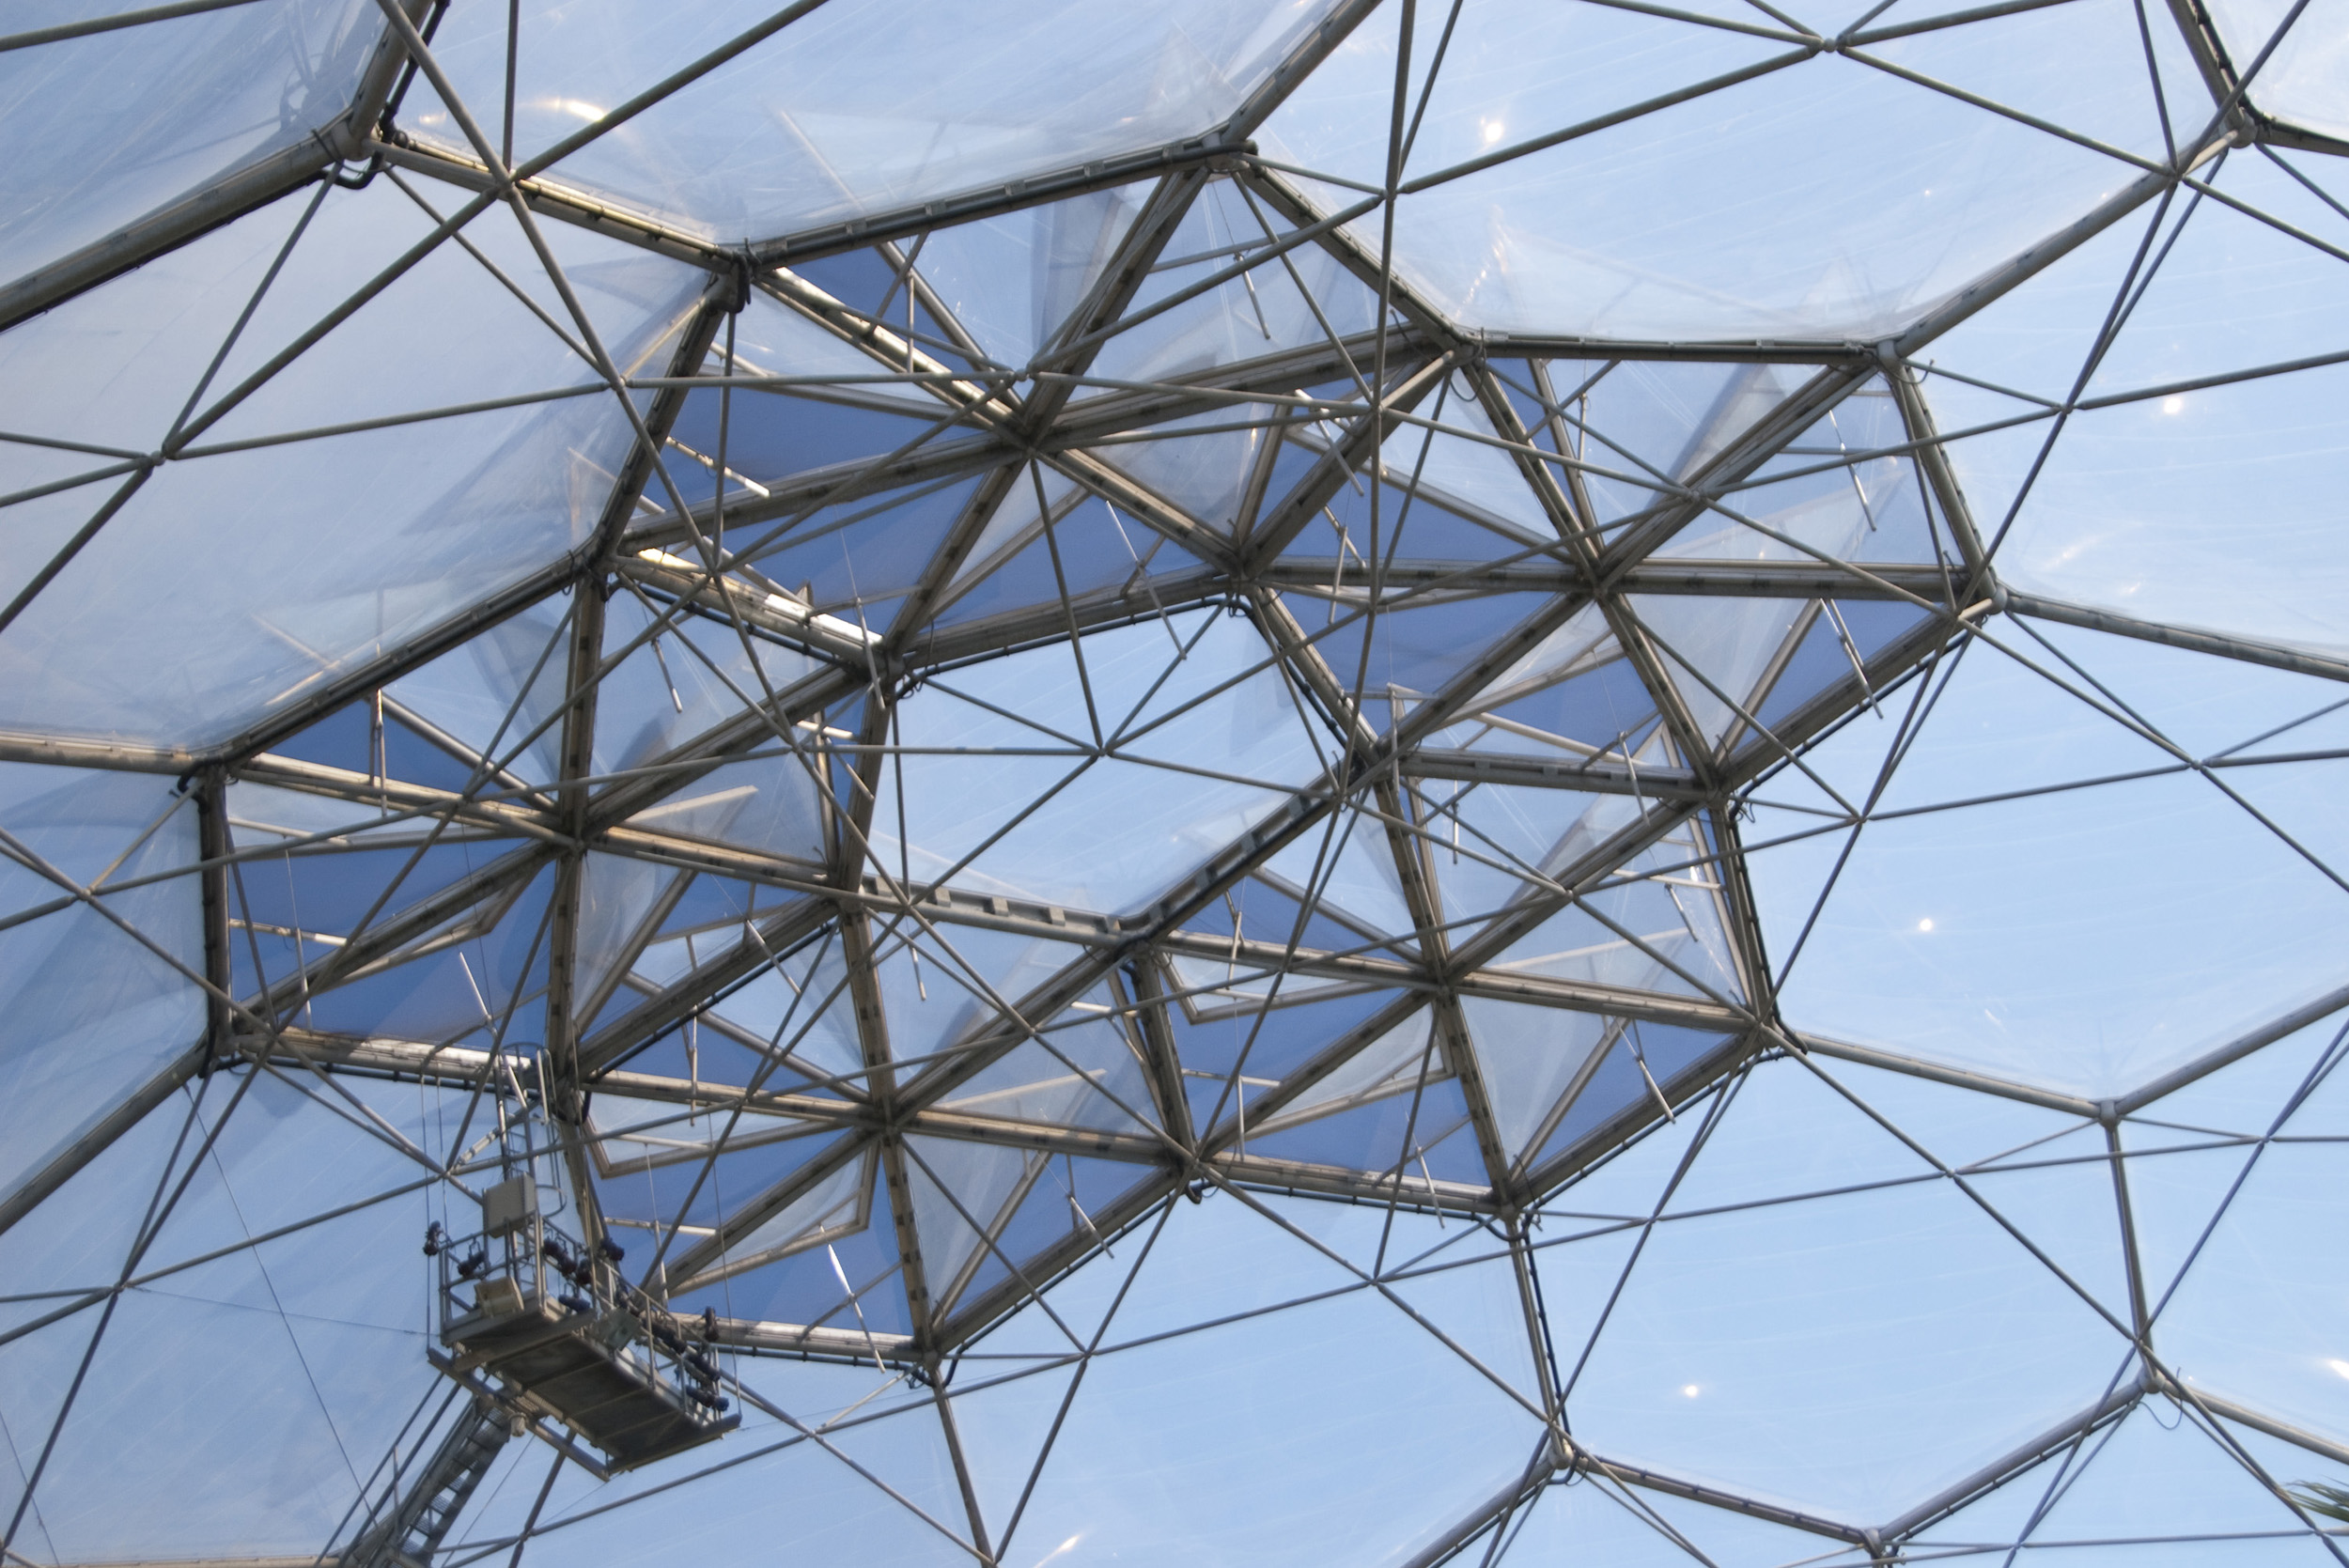 the roof of one of the eden project domes